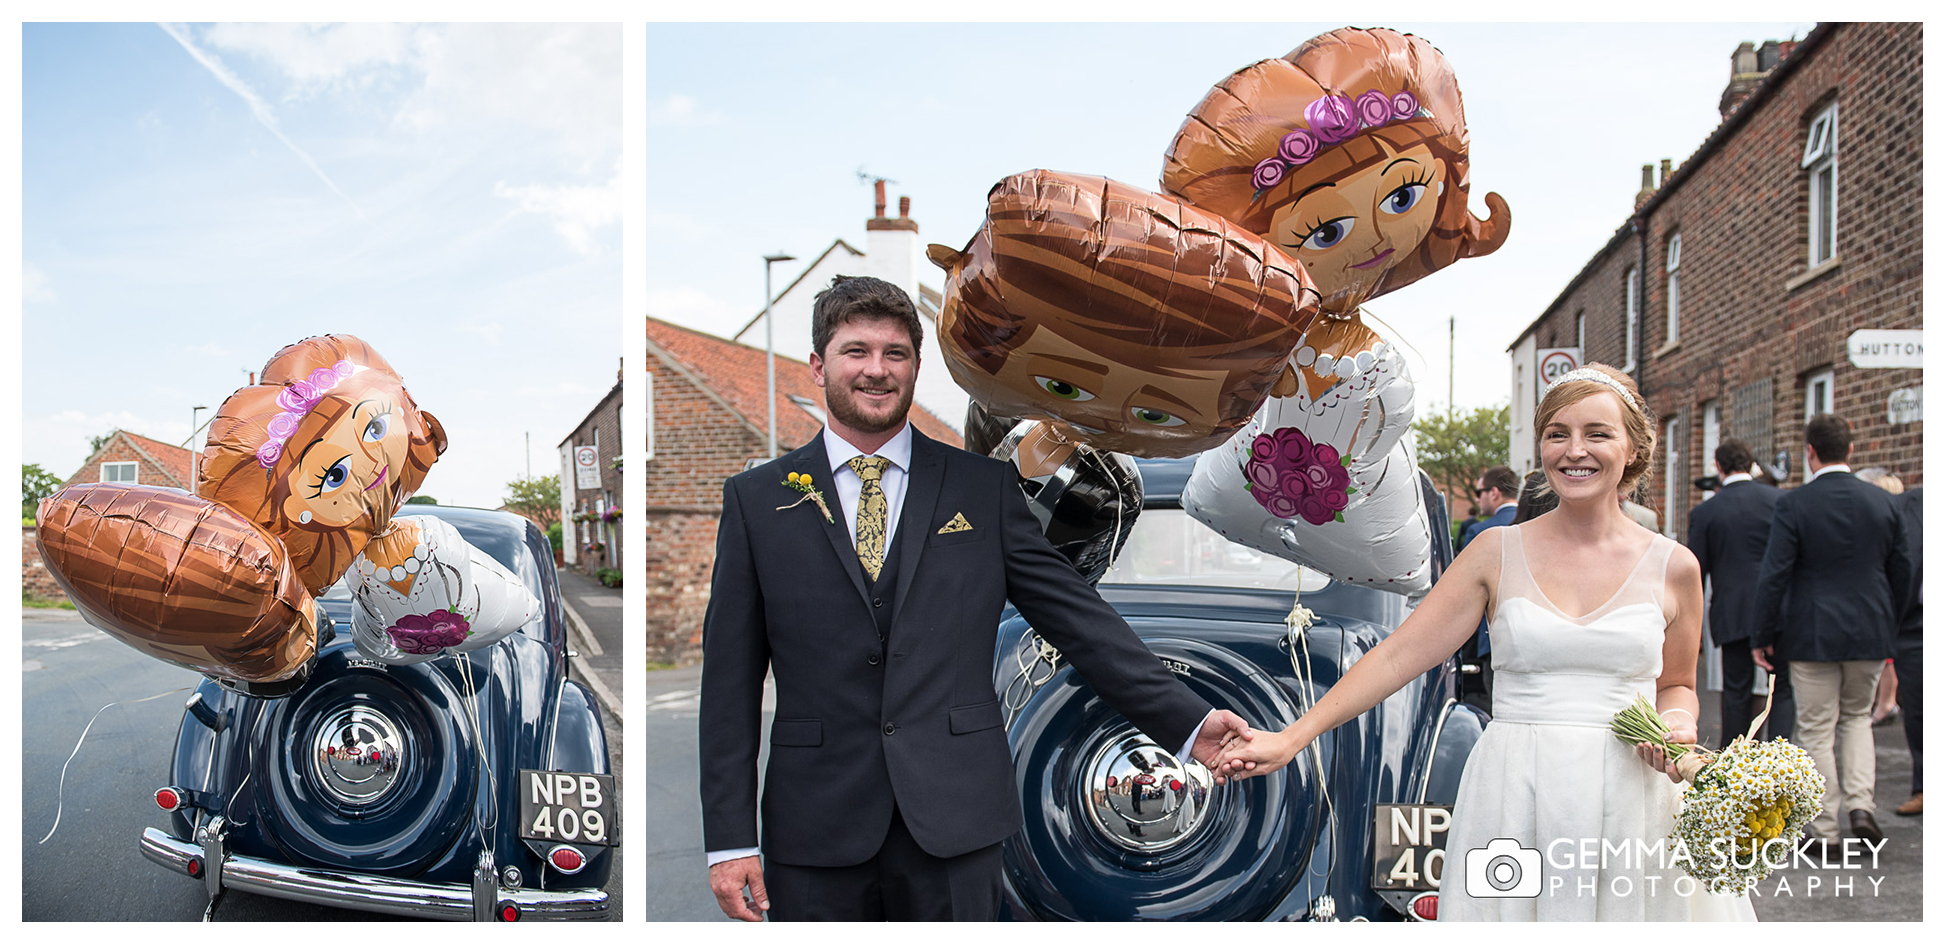 bride and groom posing for a wedding photo in Driffield